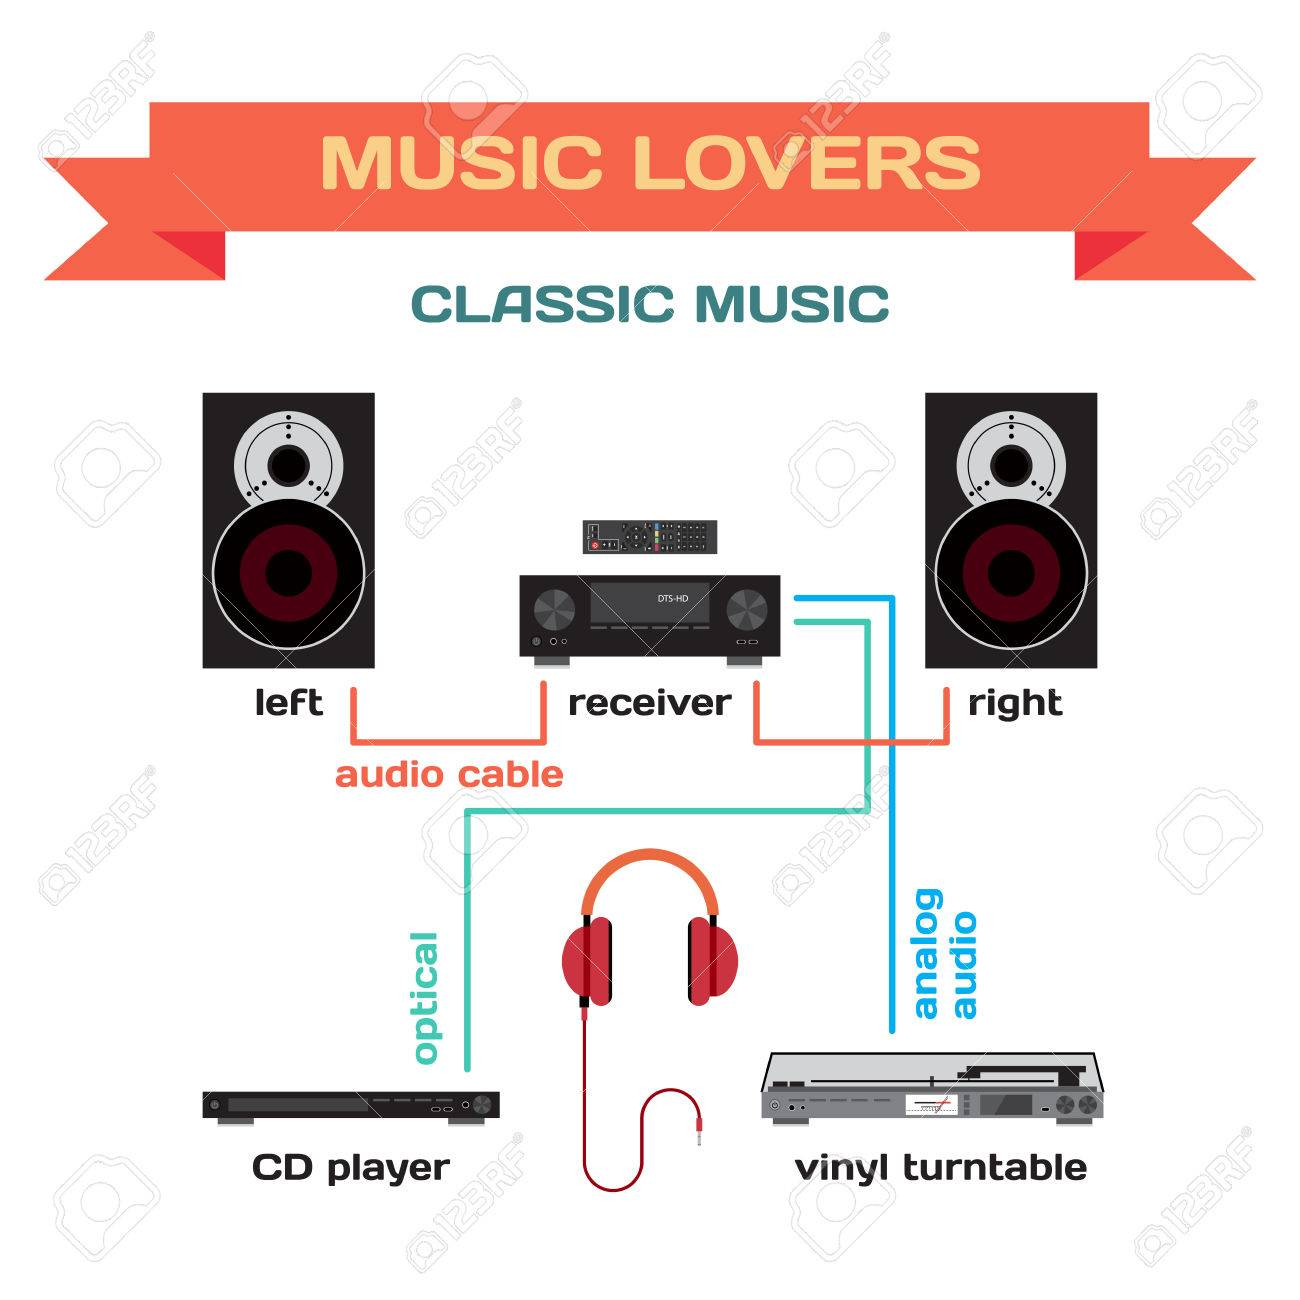 Wiring a music system for classic music flat design  Connect